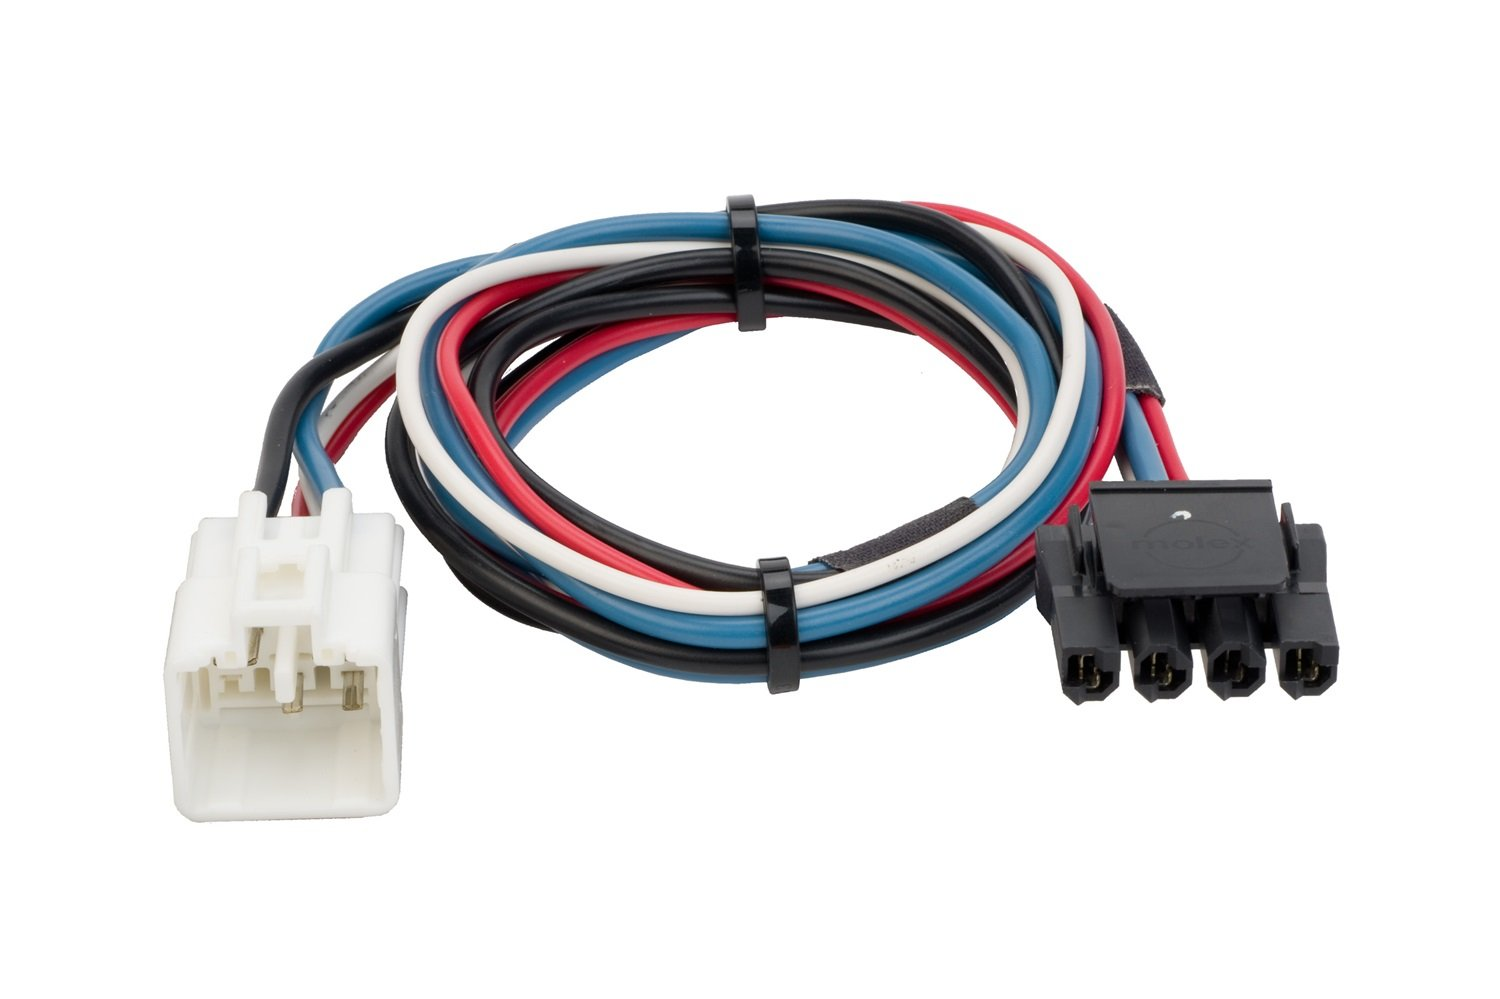 Old Toyota Wiring Harness Connector Plugs Online Schematic Diagram Gm Terminals Amazon Com Hopkins 47815 Plug In Simple Brake Control Rh 3 Wire Automotive Connectors